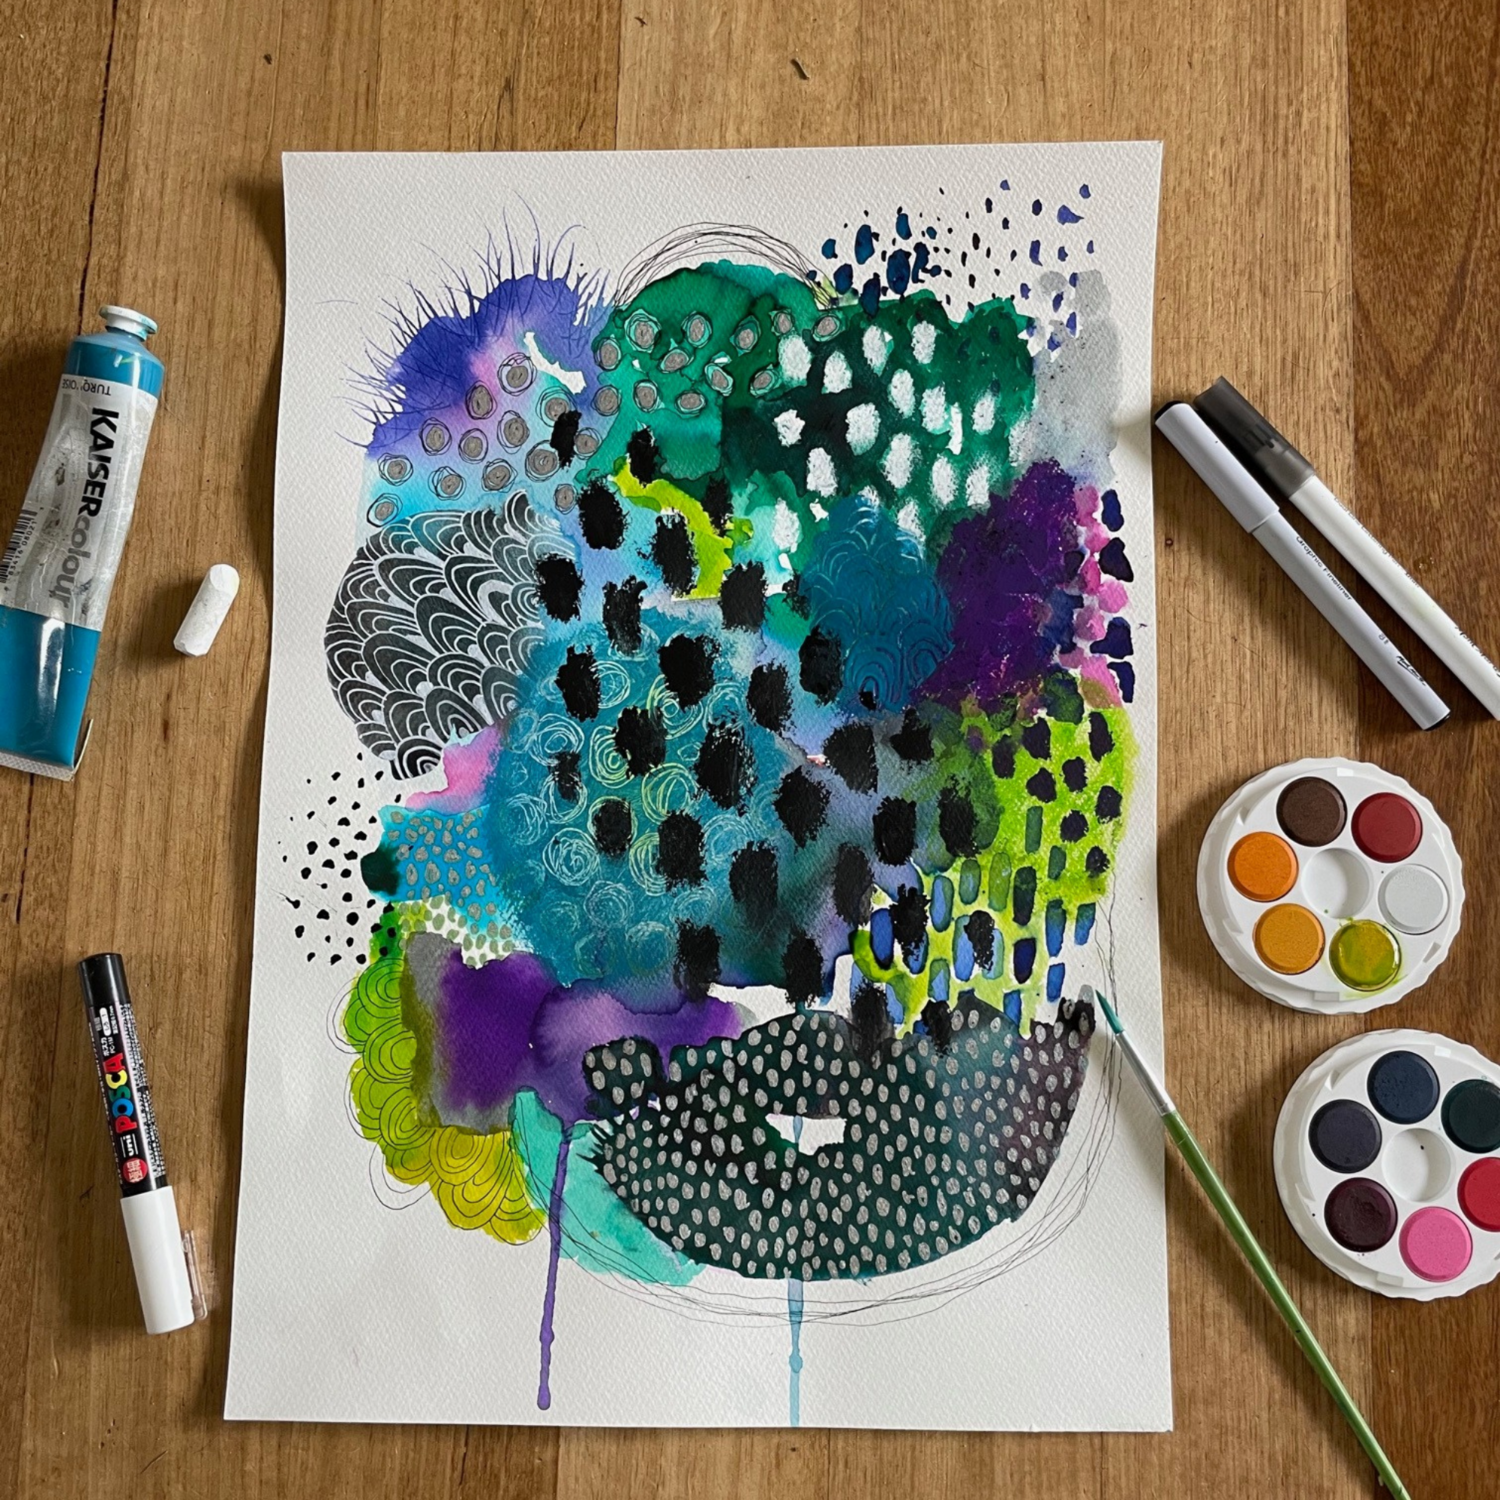 Abstract Watercolour Workshop - Sunday 24th October, 2pm - 4pm